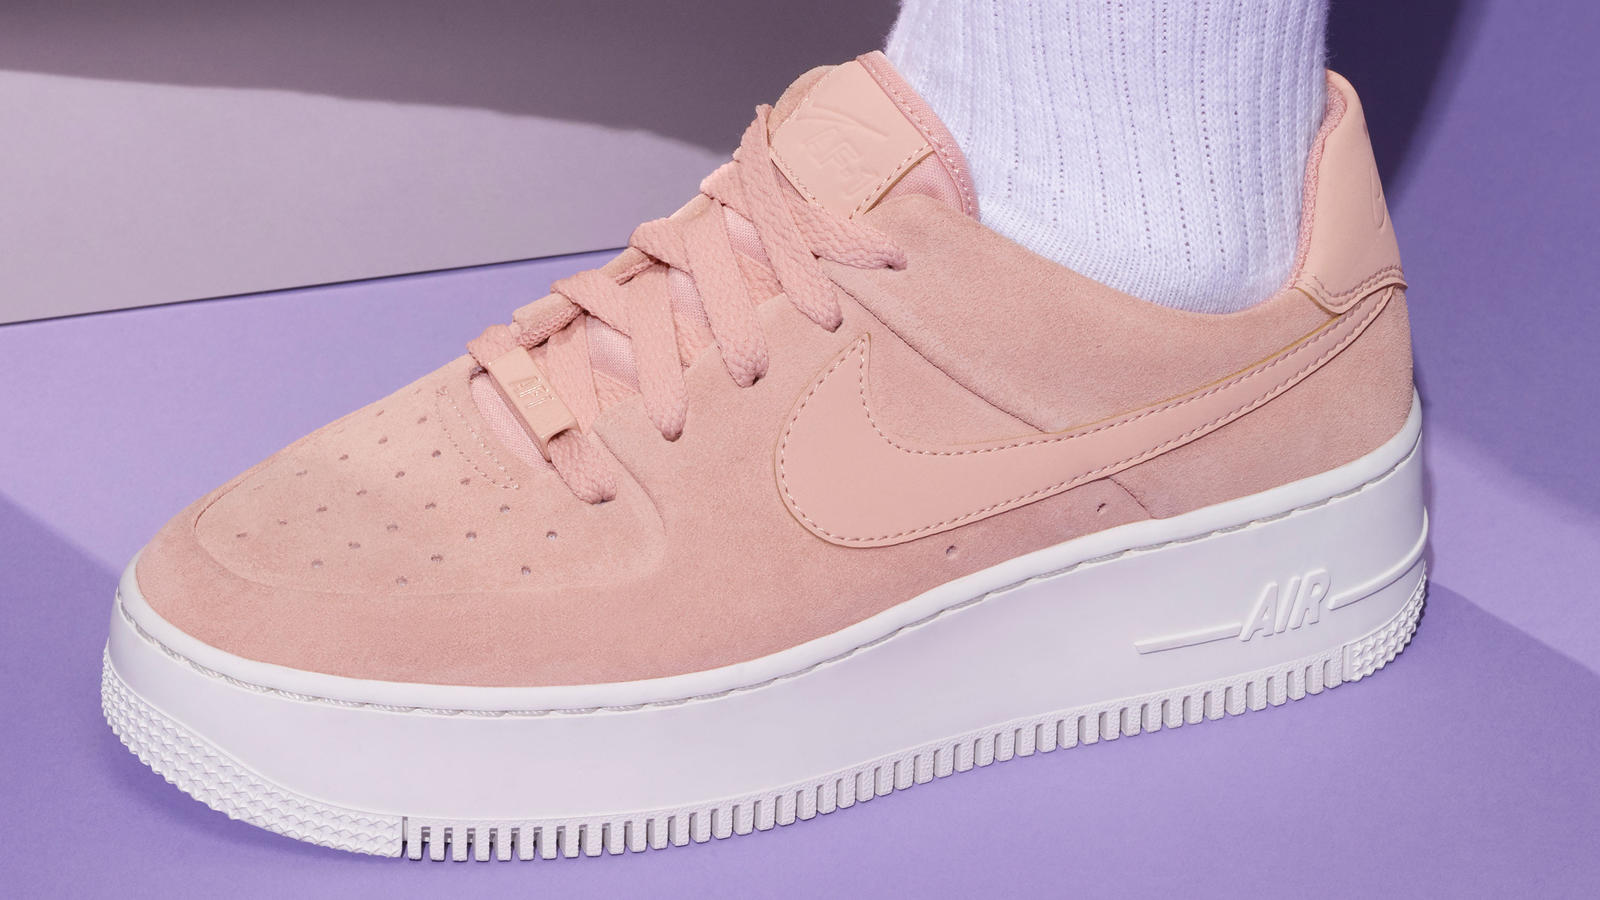 Touchante Chaussure Nike En Ligne Air Force 1 Low Basket